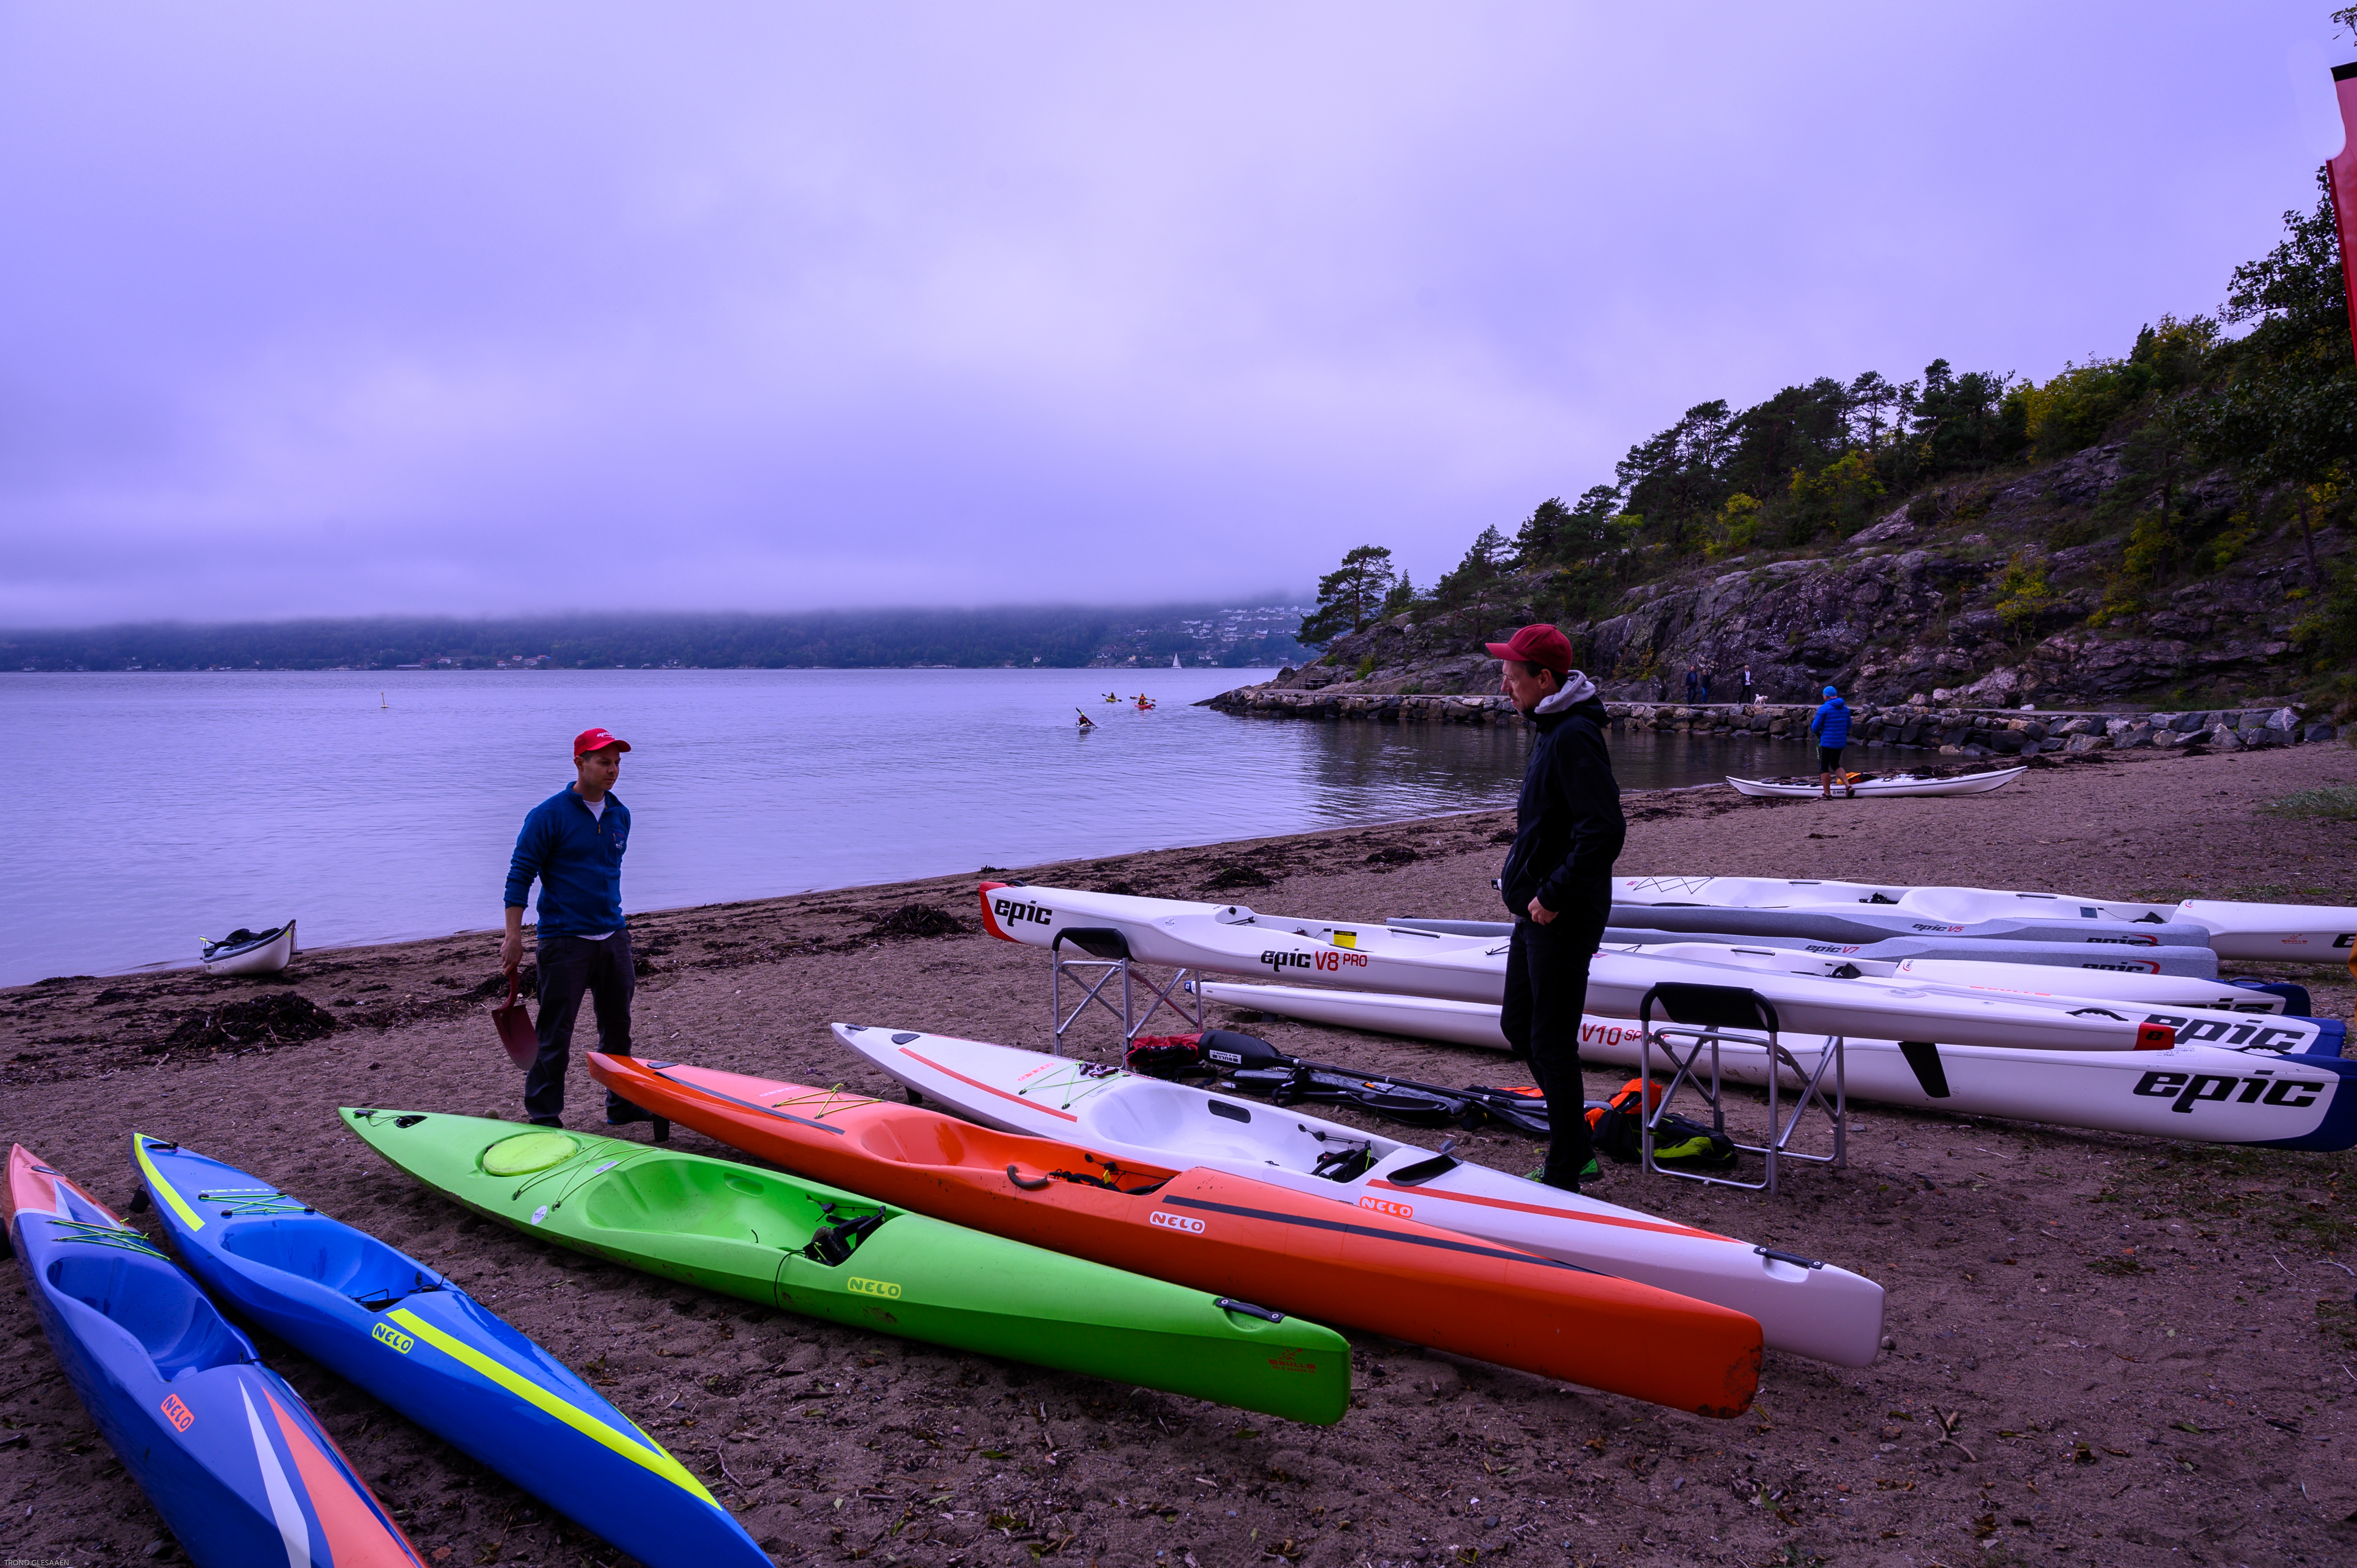 2019-09-22-Demodag-Surfski-Skipelle-Drøbak-003-2